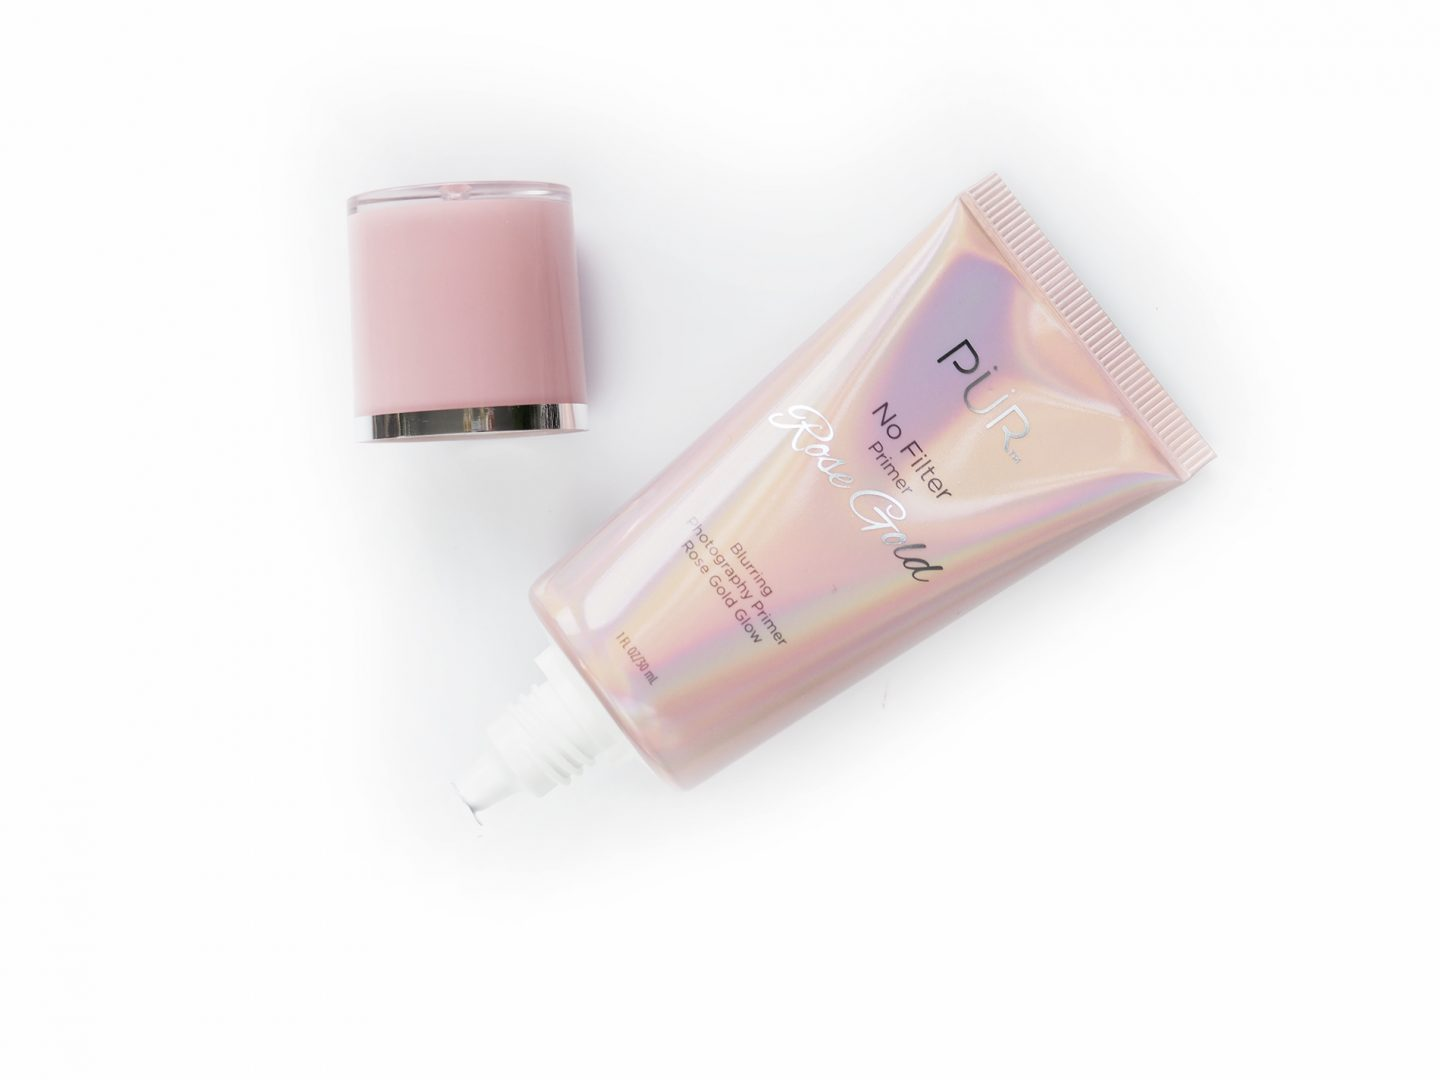 Pur Cosmetics No Filter Blurring Photography Primer Rose Gold Glow